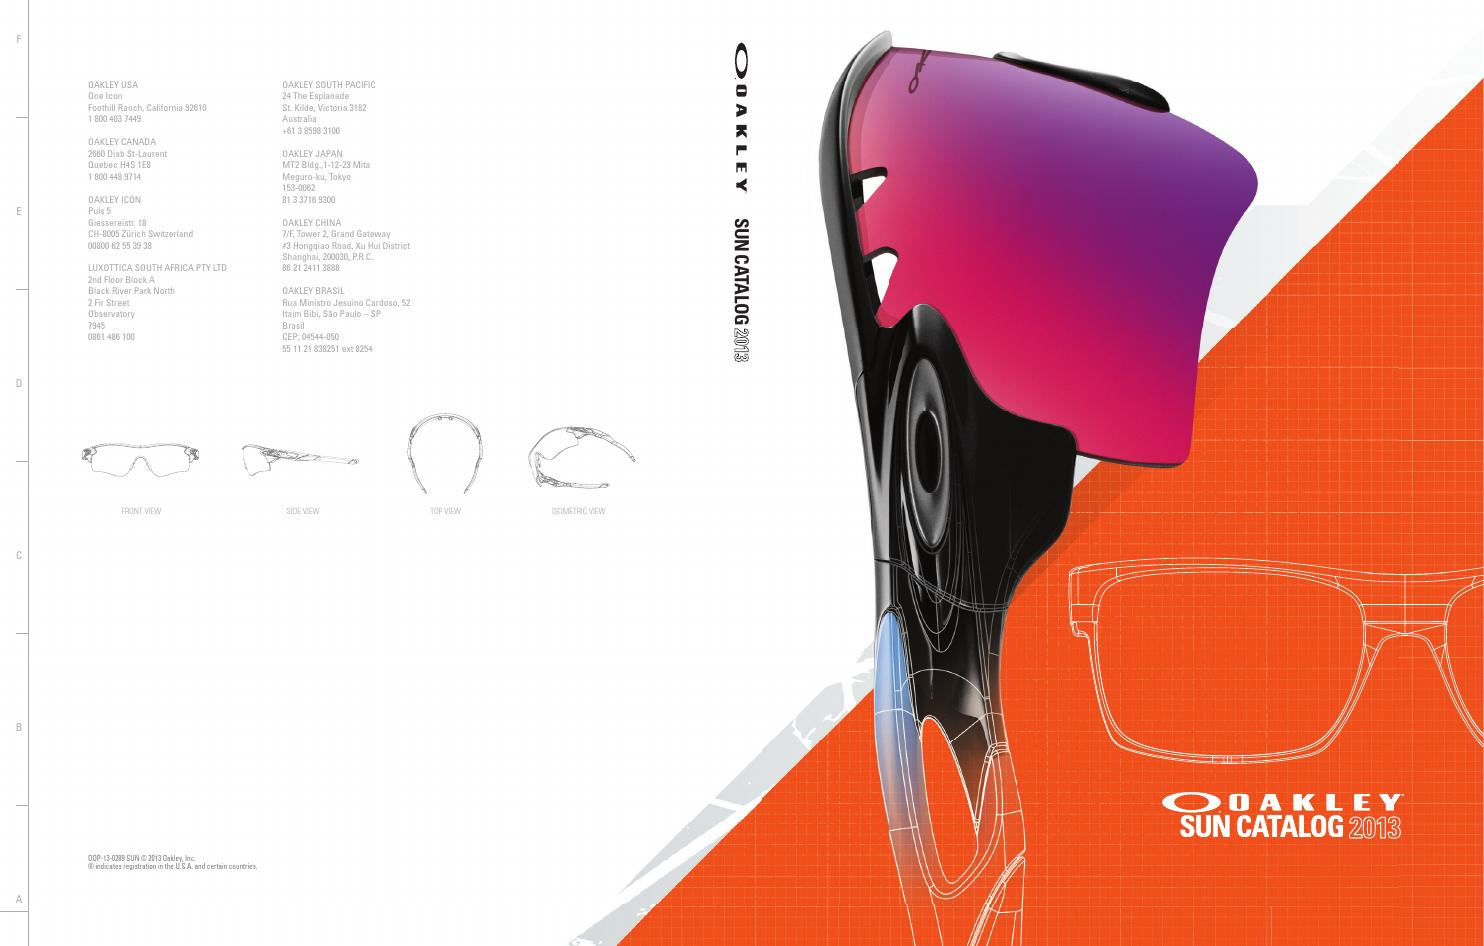 5a8e7564cd Oakley Sunglasses 2013 by Moto Marketing - issuu